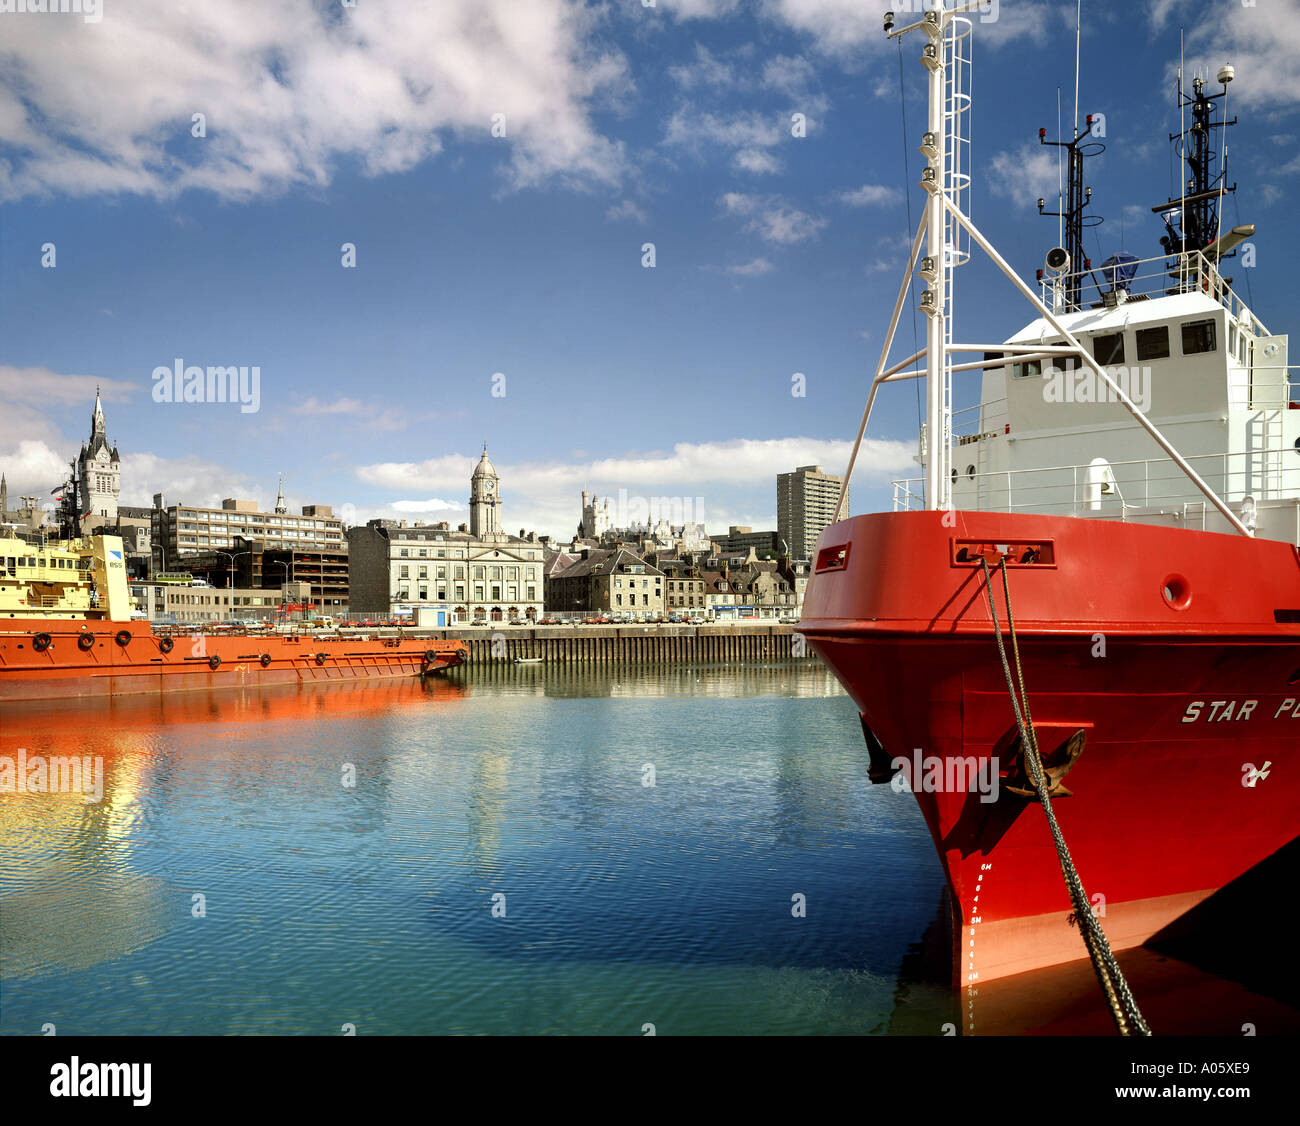 GB - SCOTLAND: Aberdeen Harbour - Stock Image